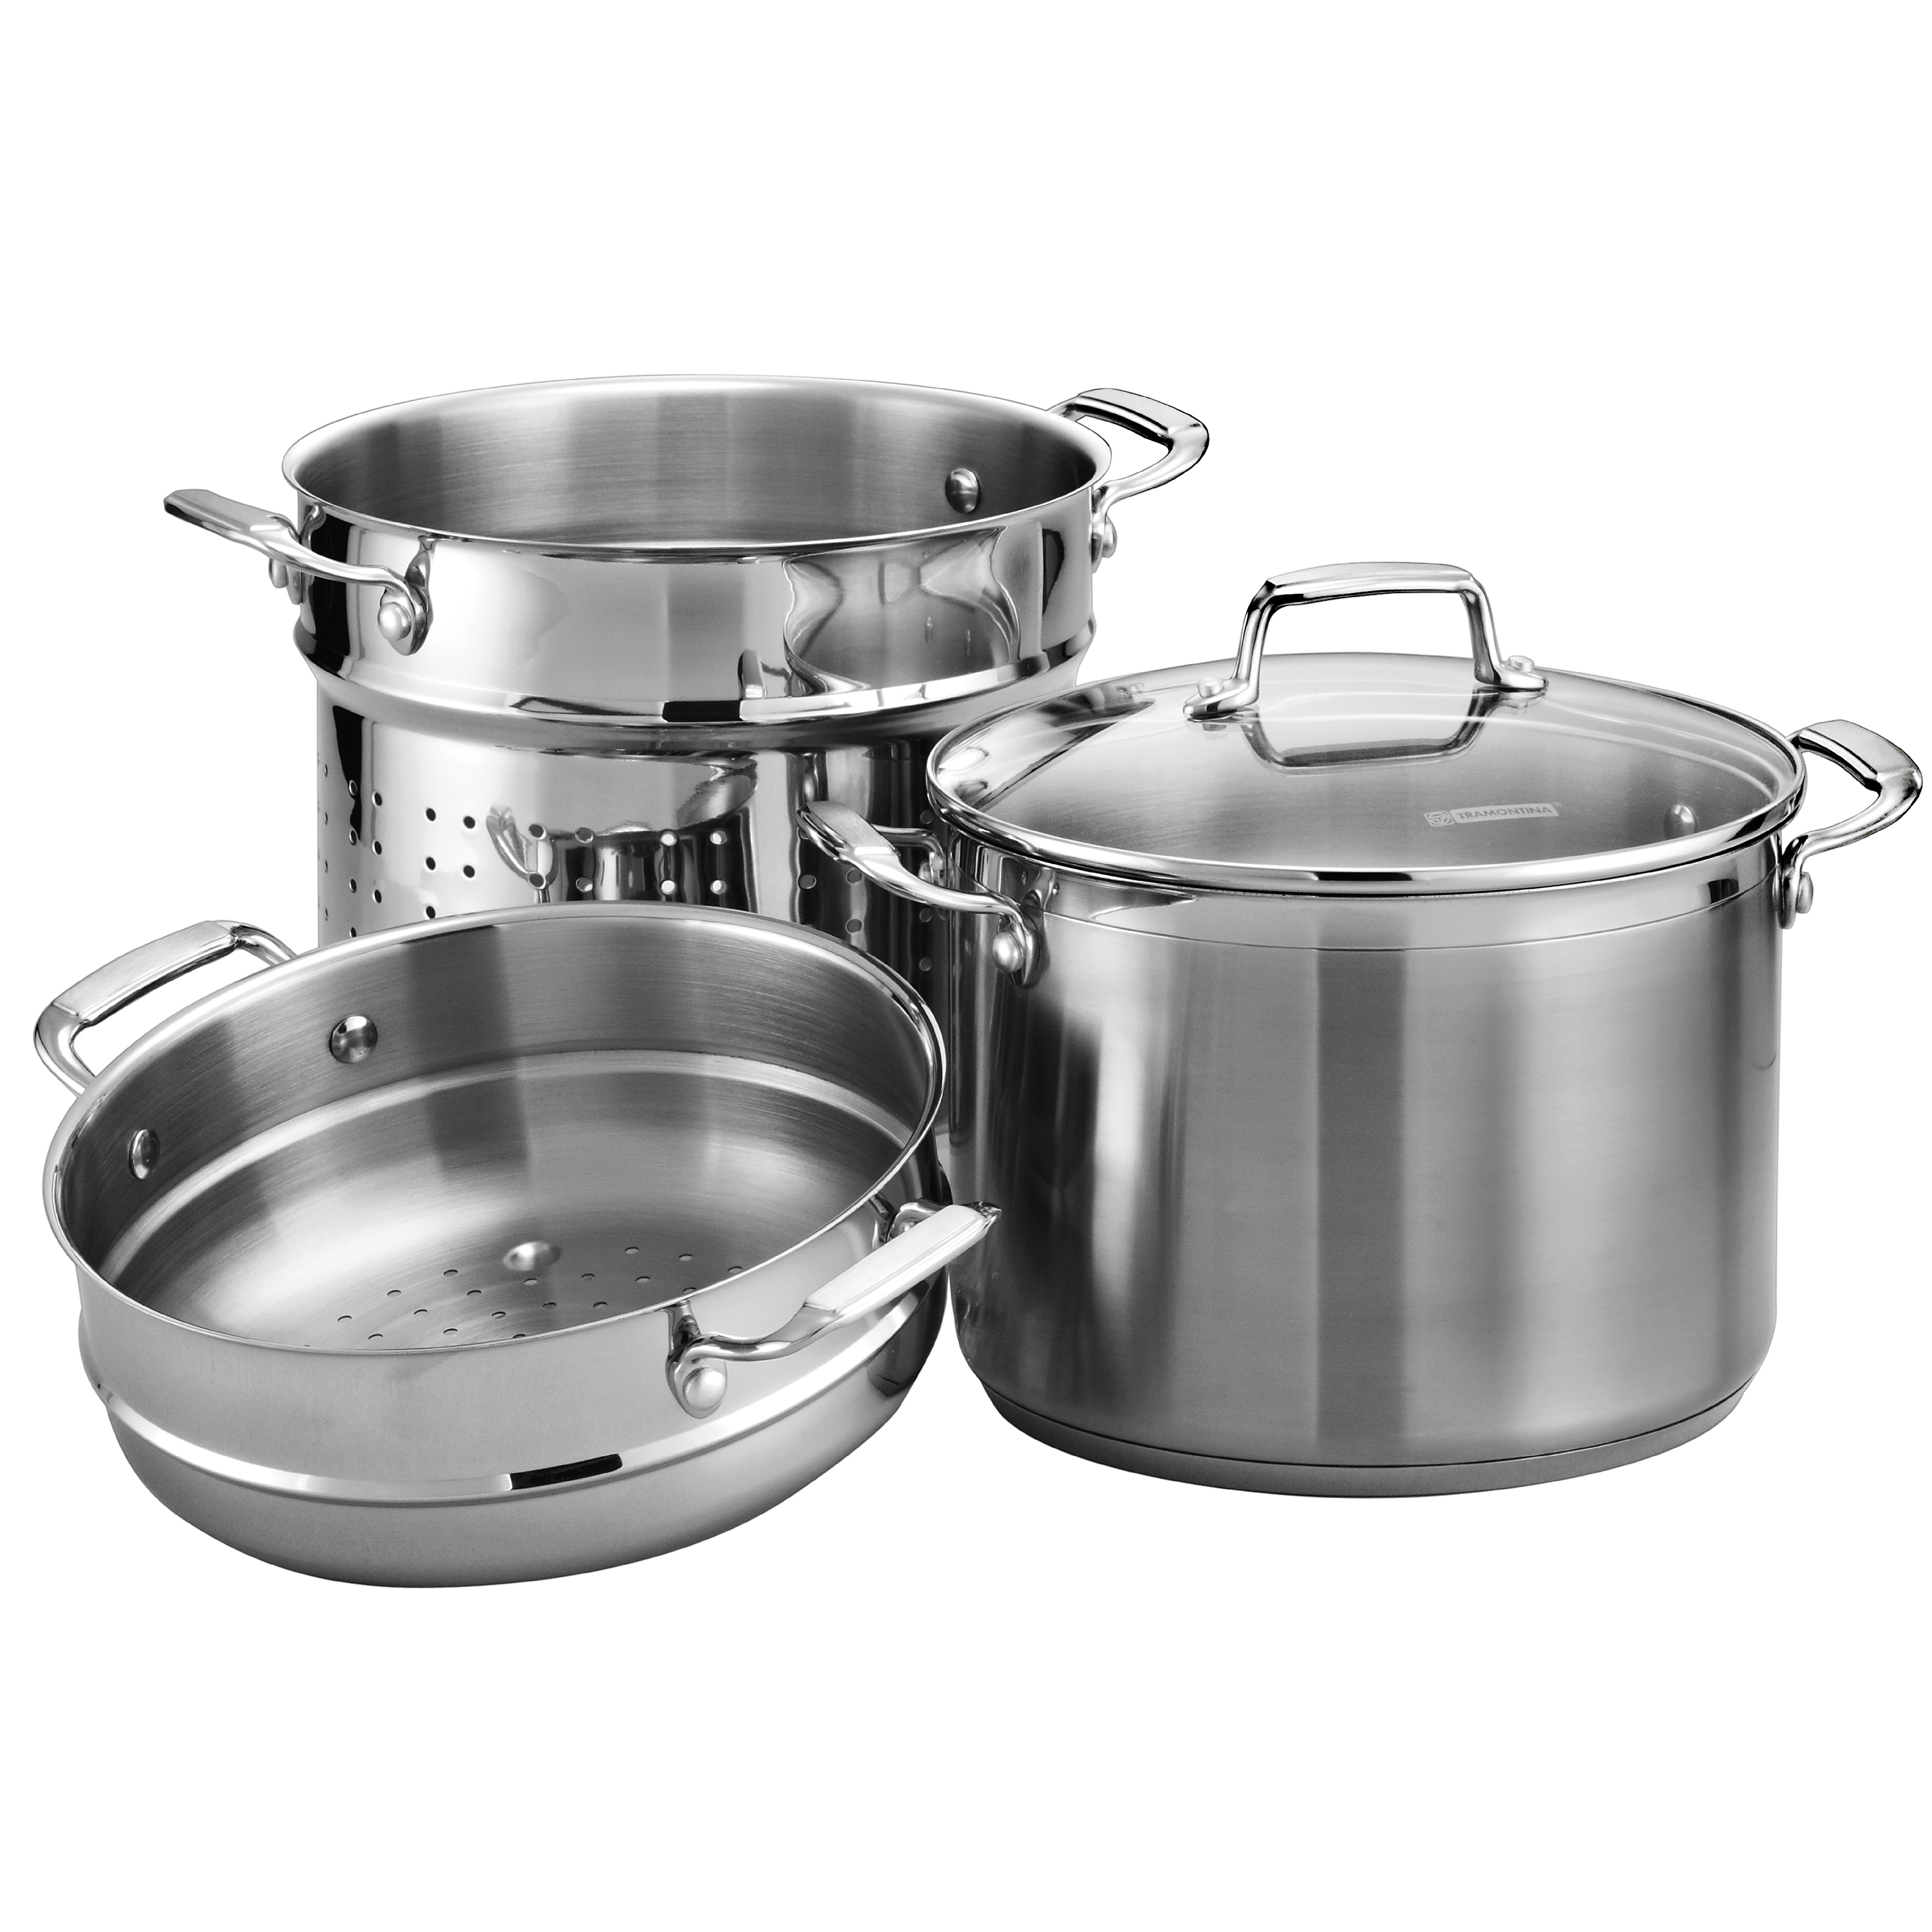 Tramontina Gourmet 4-Piece 8-Quart Covered Multi-Cooker